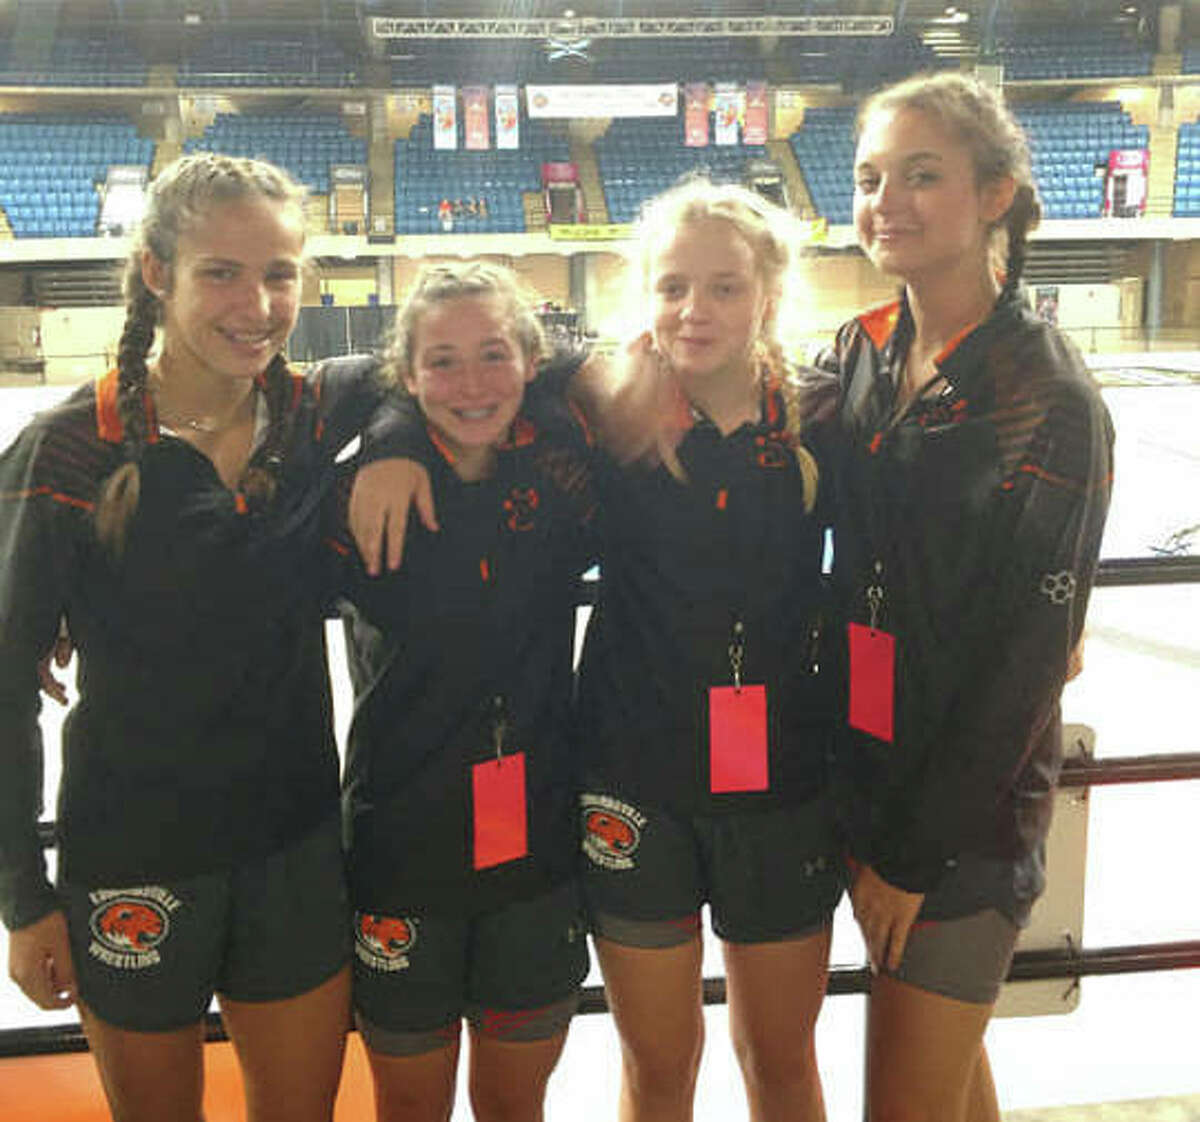 The Edwardsville Tigers were represented by Olivia Coll (101 pounds), Rosie Sanders (120 pounds), Abby Rhodes (120 pounds) and Gabby Jesse (132 pounds) at the IWCOA state tournament.